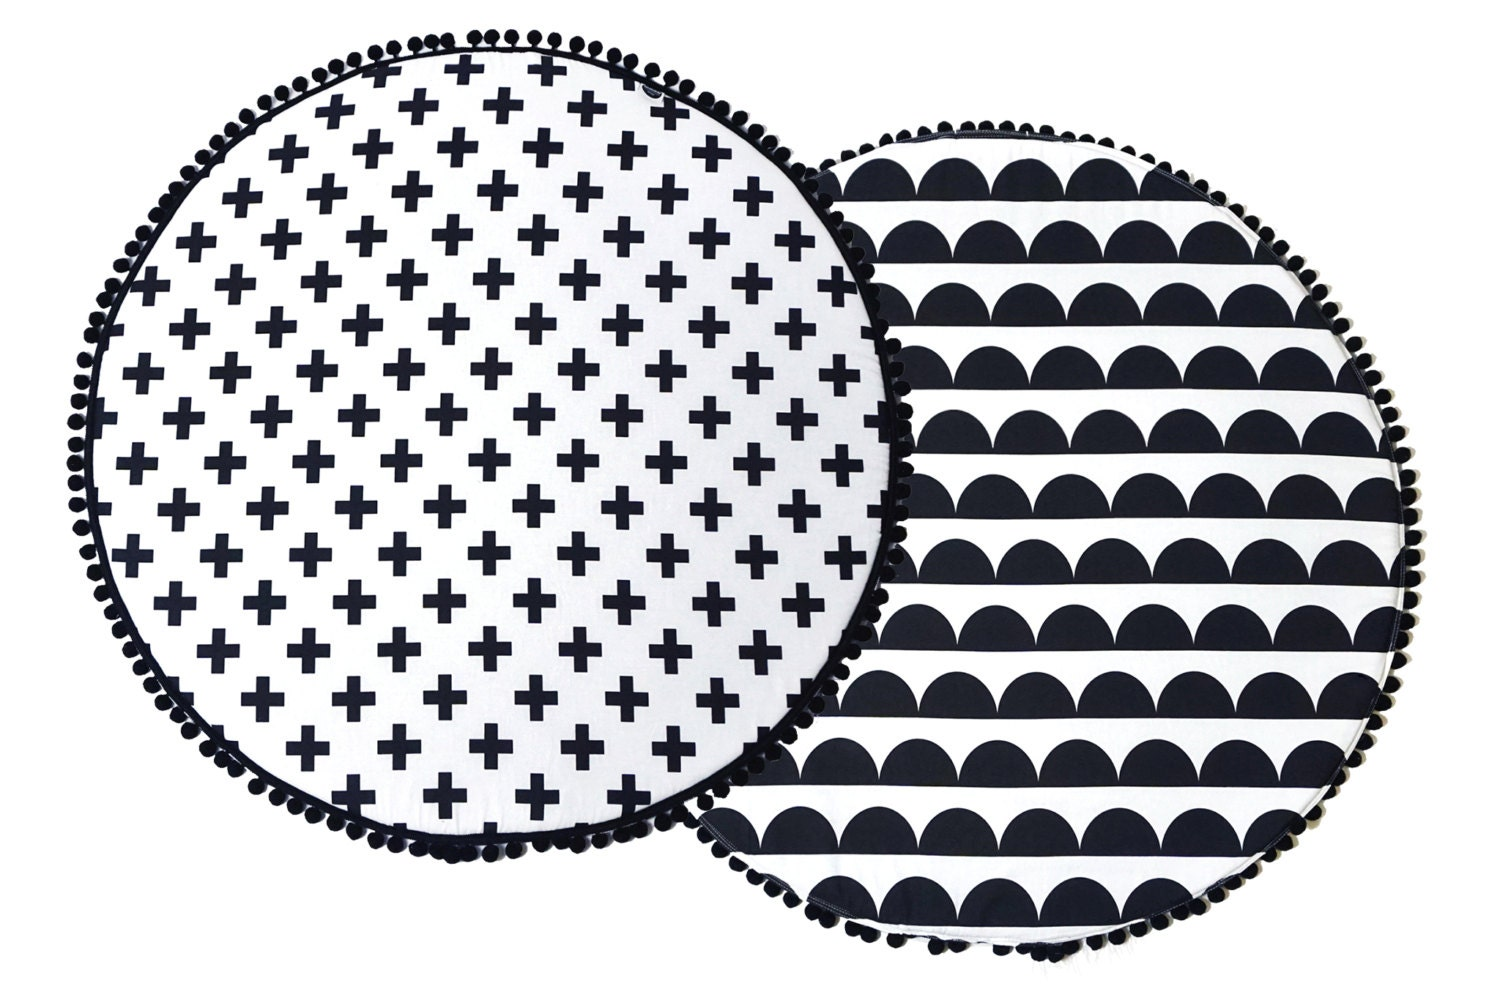 Padded Play Mat Monochrome Baby Playmat Round Play Mat